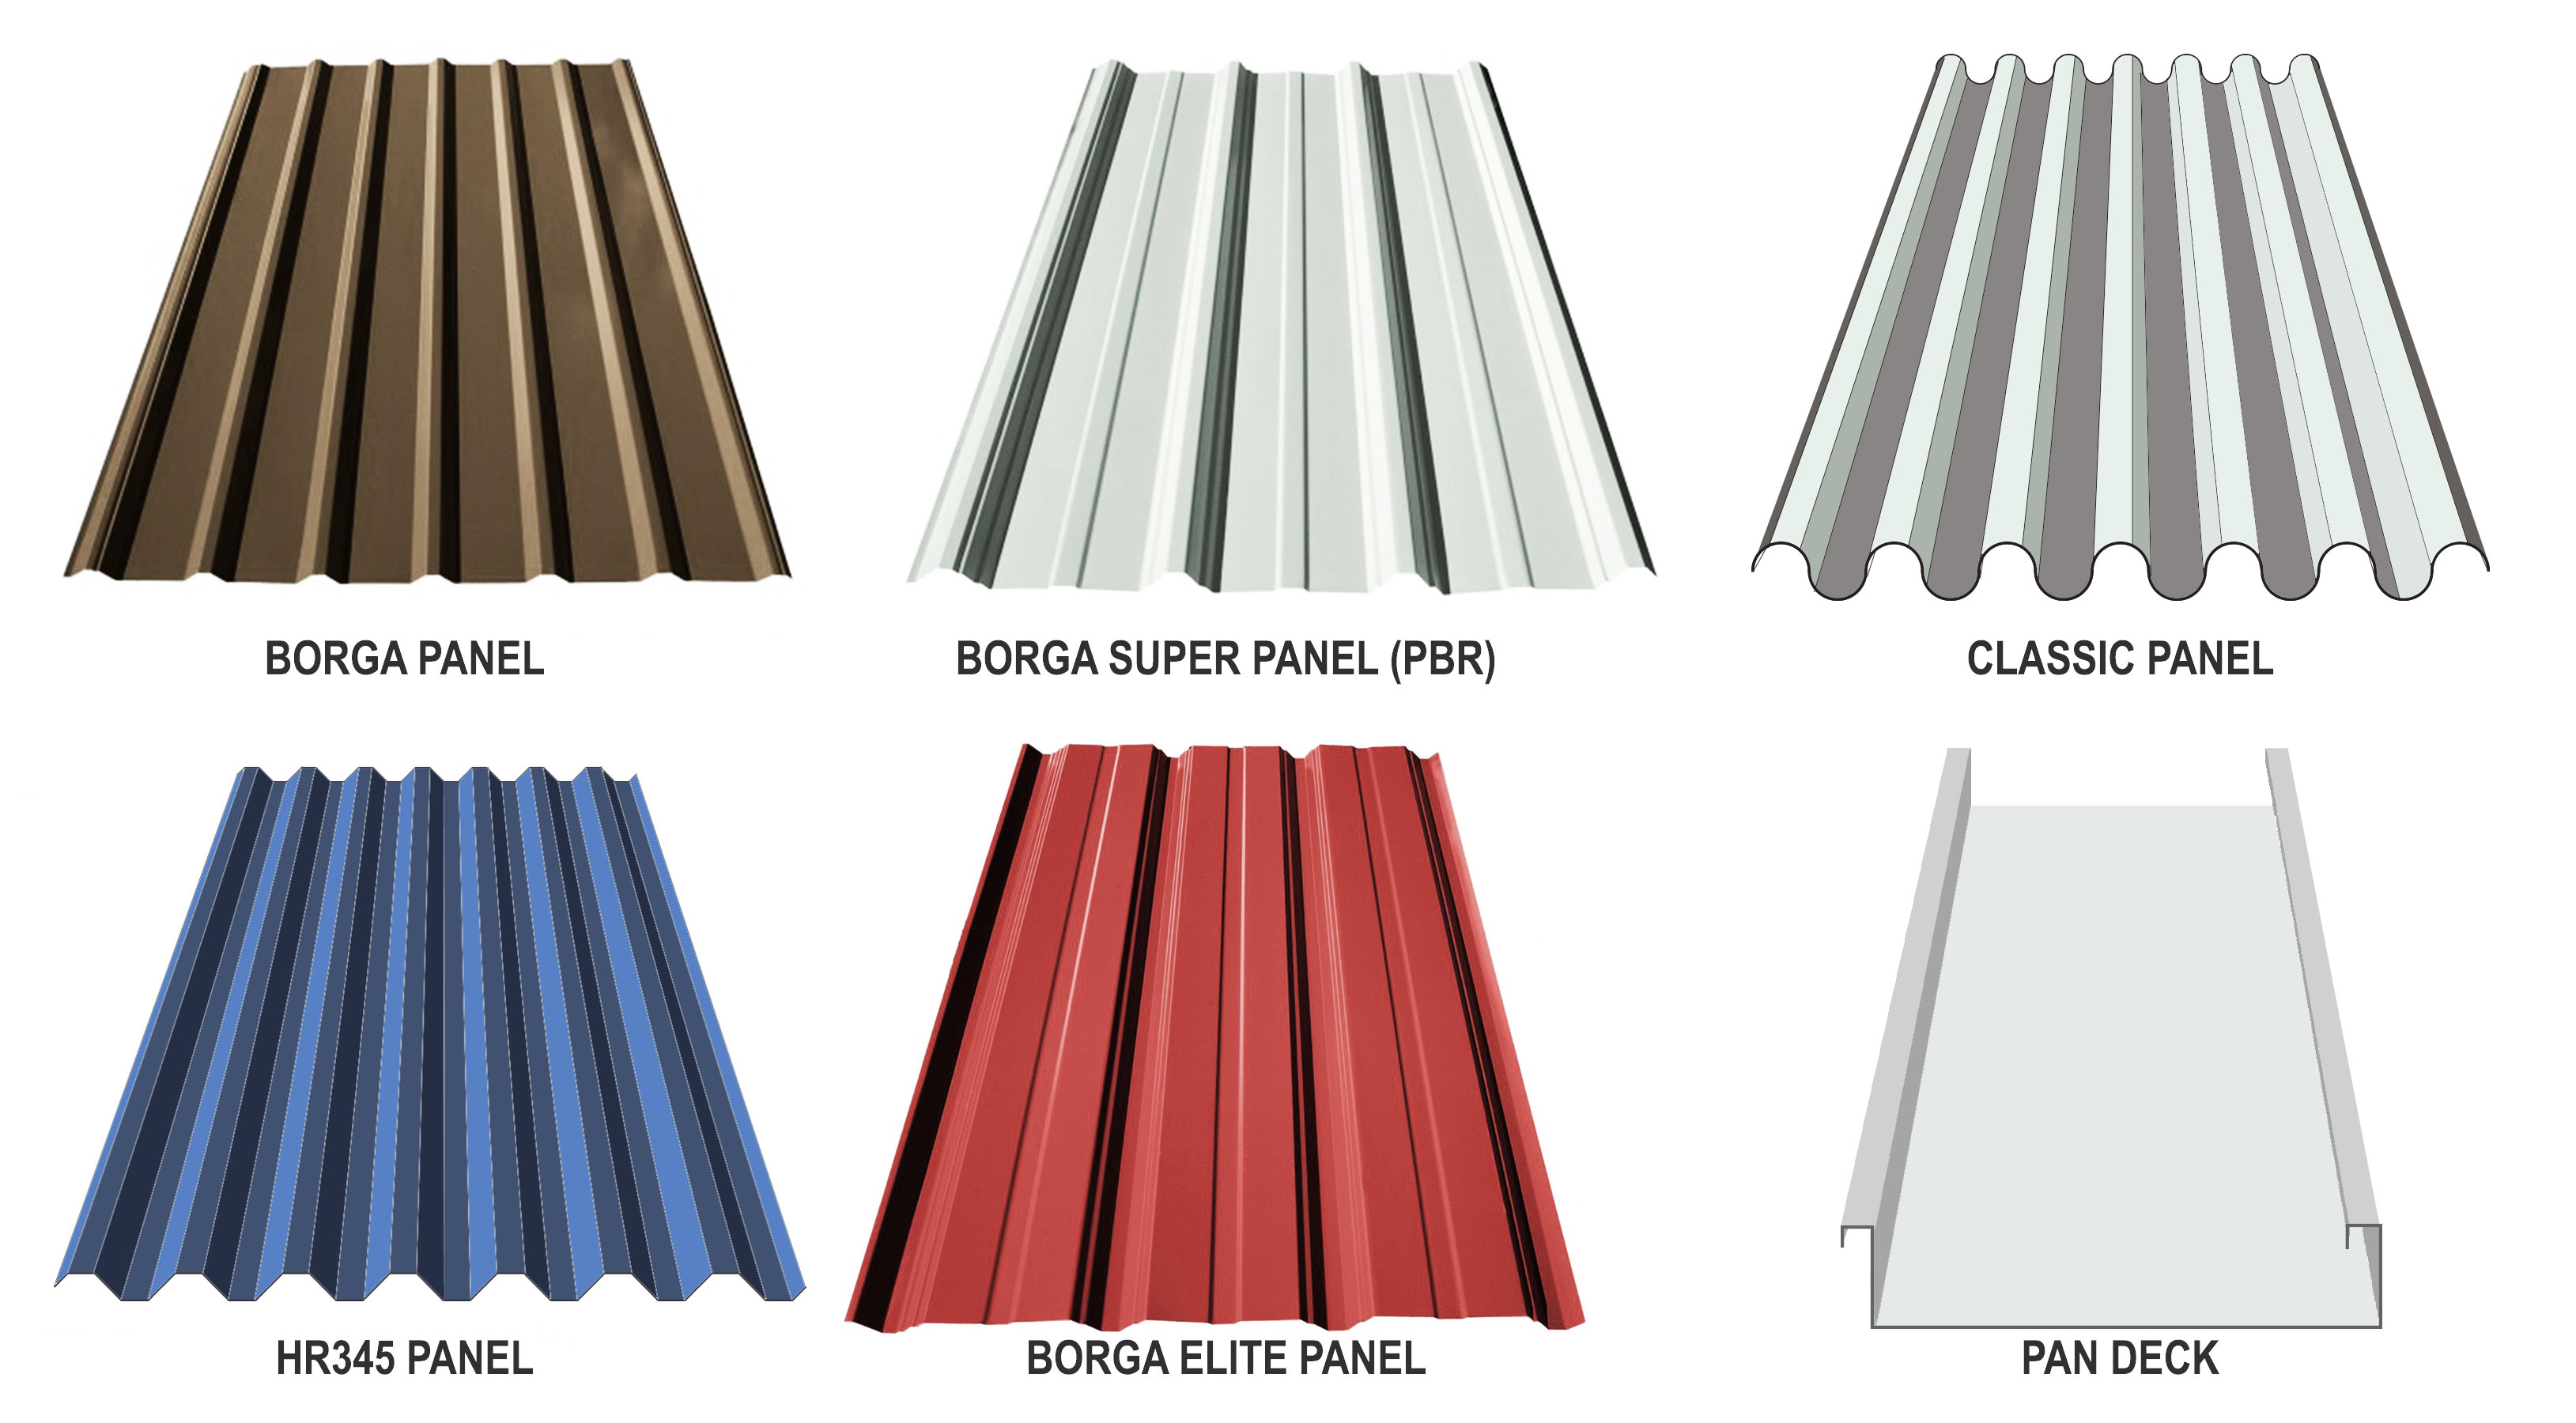 BORGA STEEL BUILDINGS COMPONENTS METAL Exposed fastener panels PBR FRESNO CALIFORNIA FOWLER